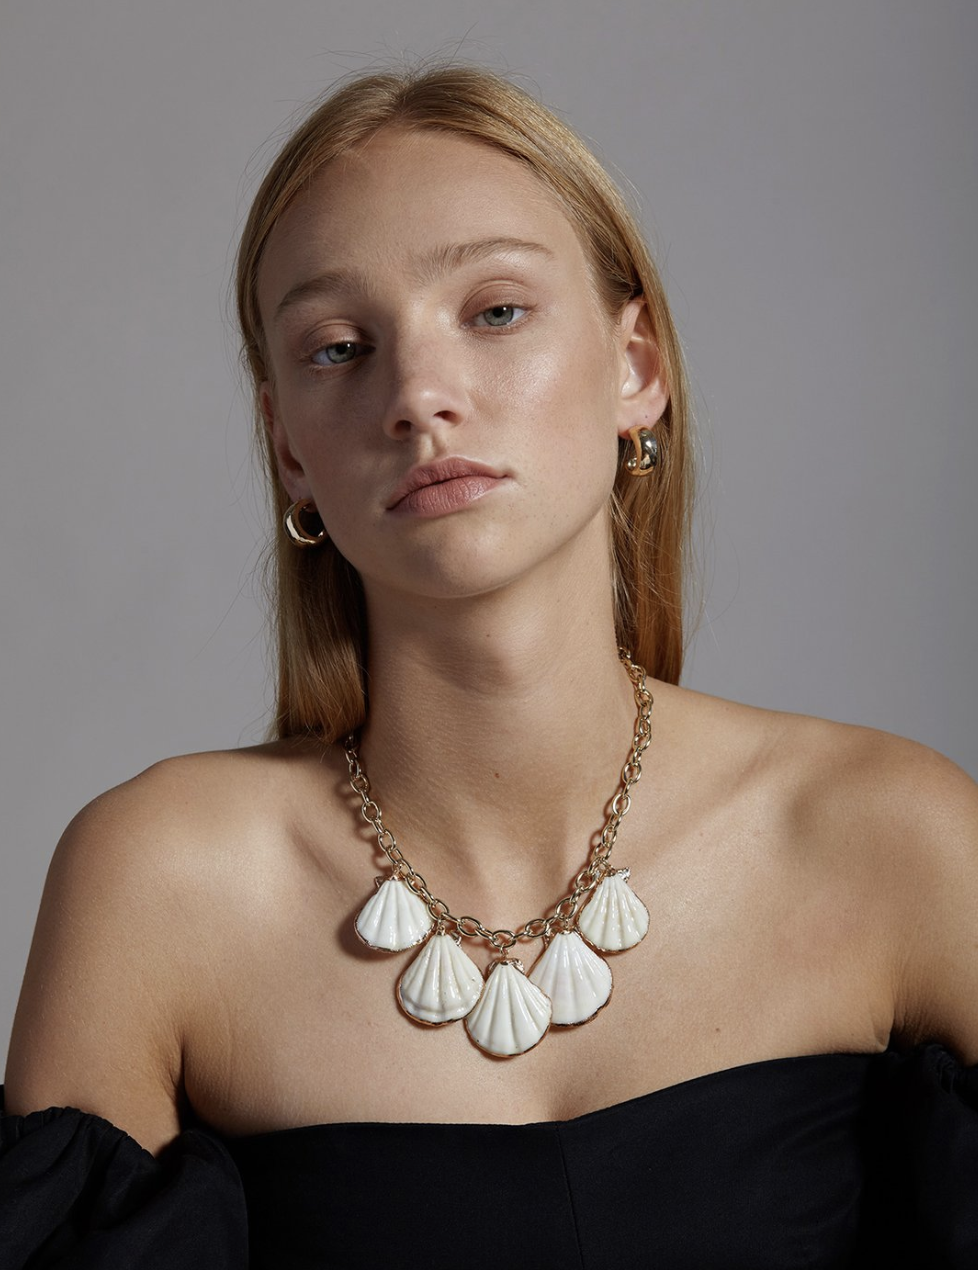 https://reliquiajewellery.com/collections/new/products/catch-me-if-you-can-hoops